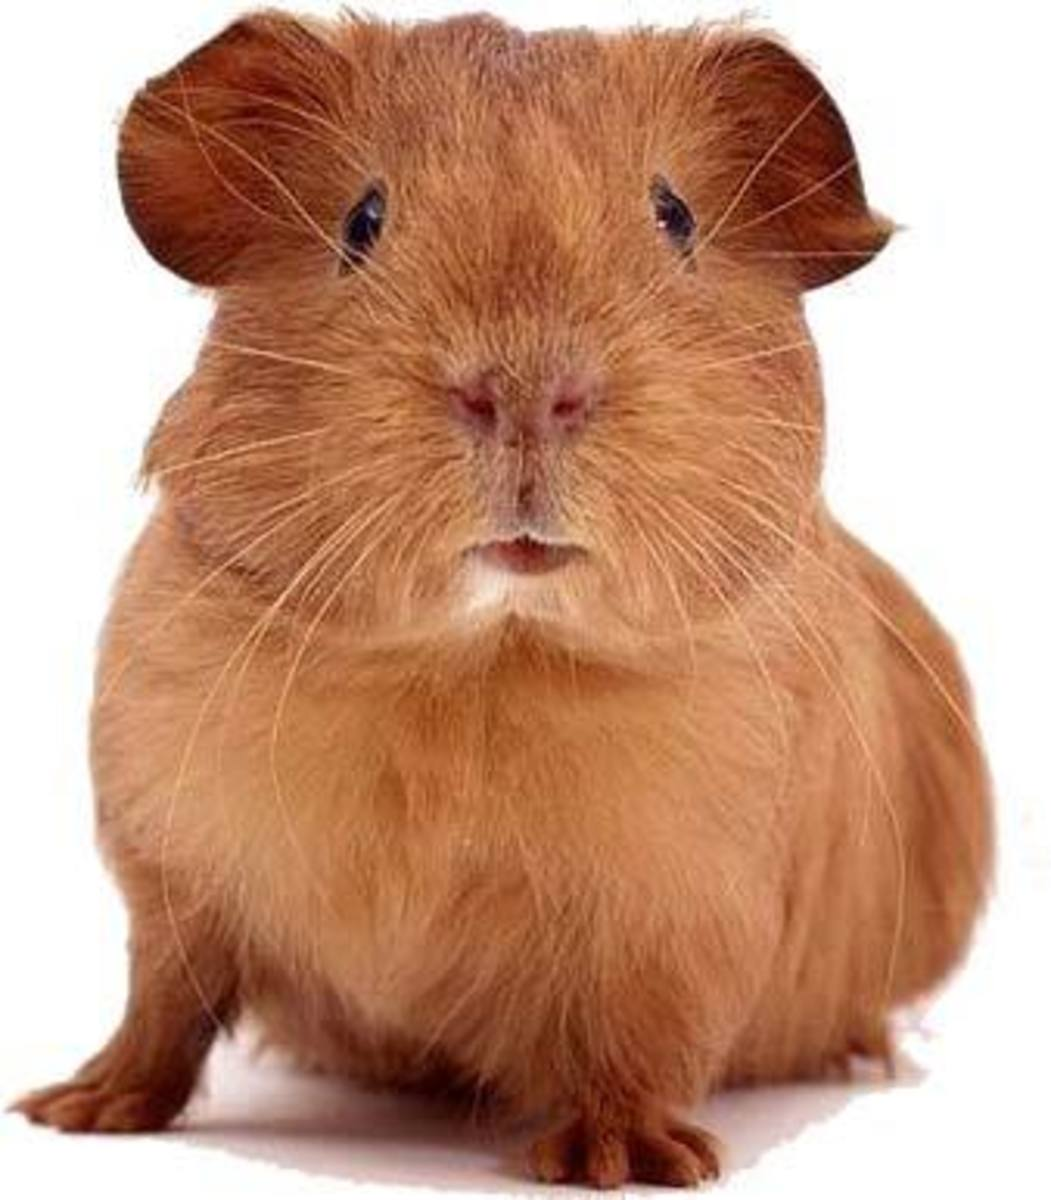 How to Choose and Care for Your Guinea-Pig (Cavy)